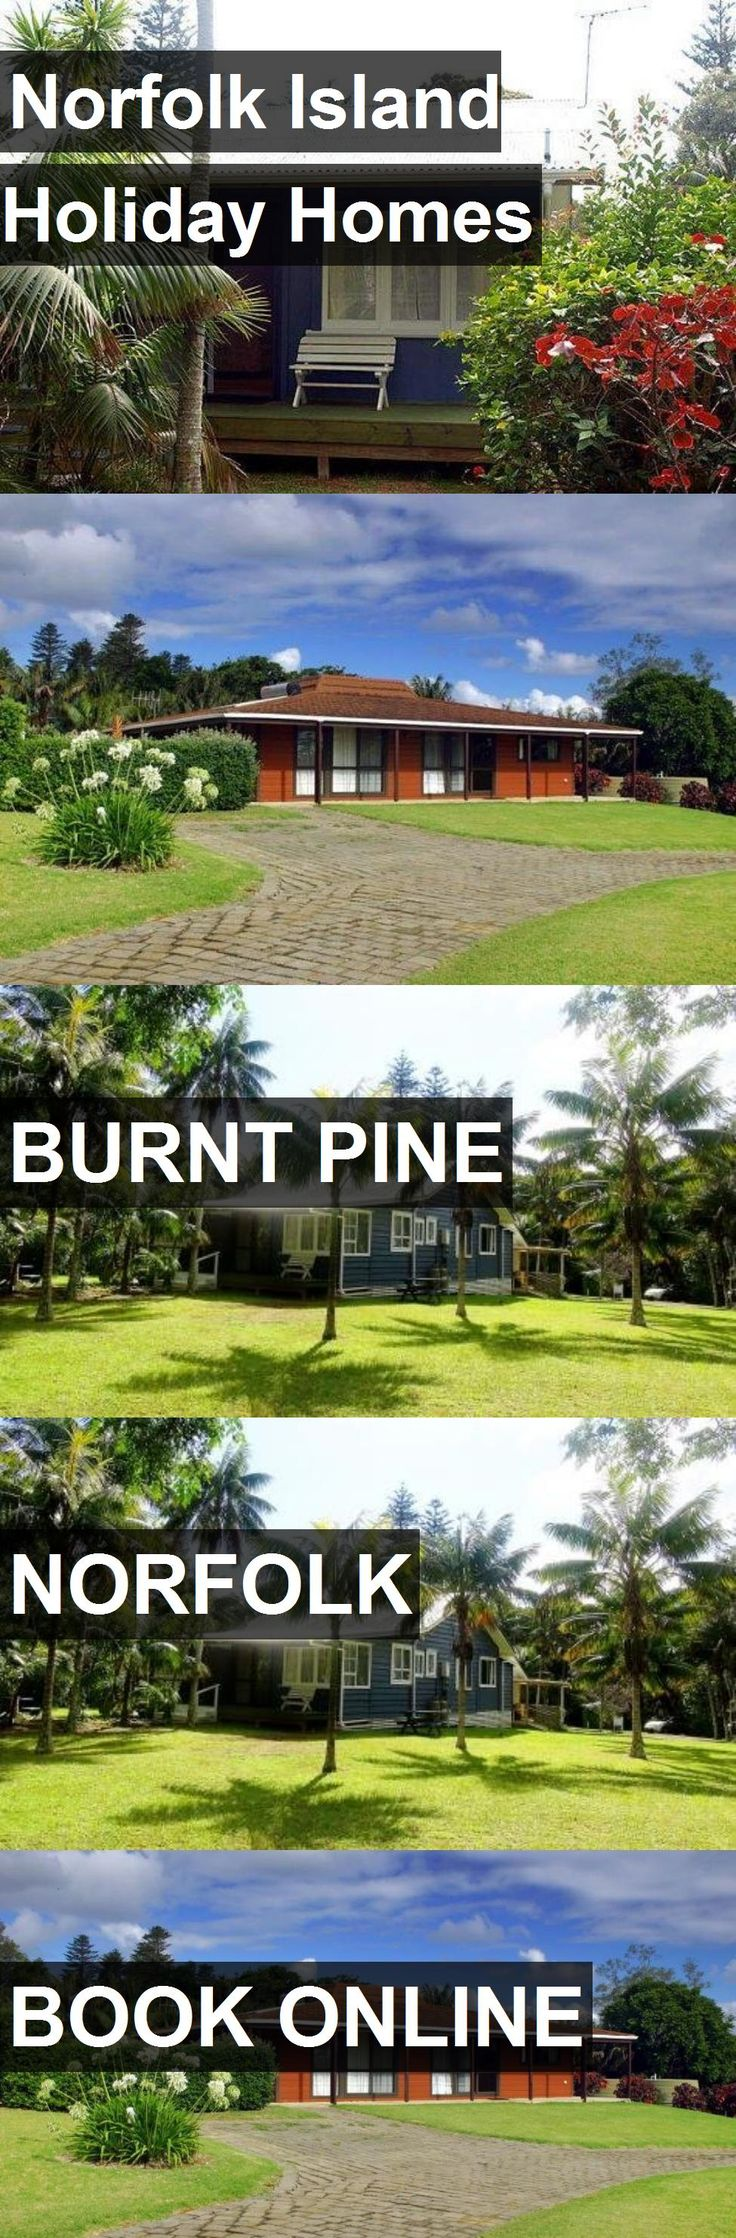 Hotel Norfolk Island Holiday Homes in Burnt Pine, Norfolk. For more information, photos, reviews and best prices please follow the link. #Norfolk #BurntPine #travel #vacation #hotel